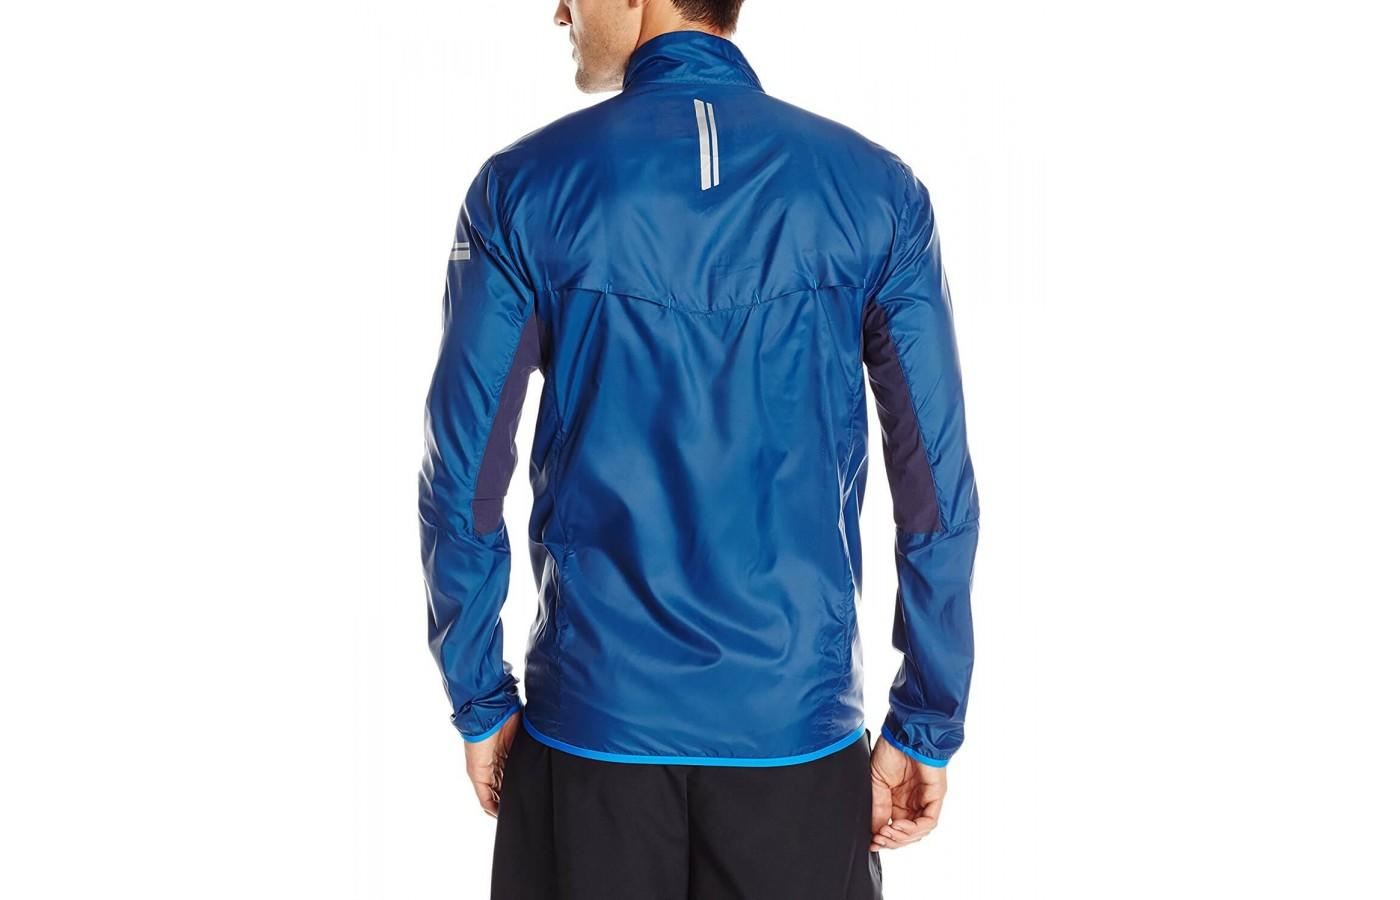 An In Depth Review of the Salomon Agility Jacket